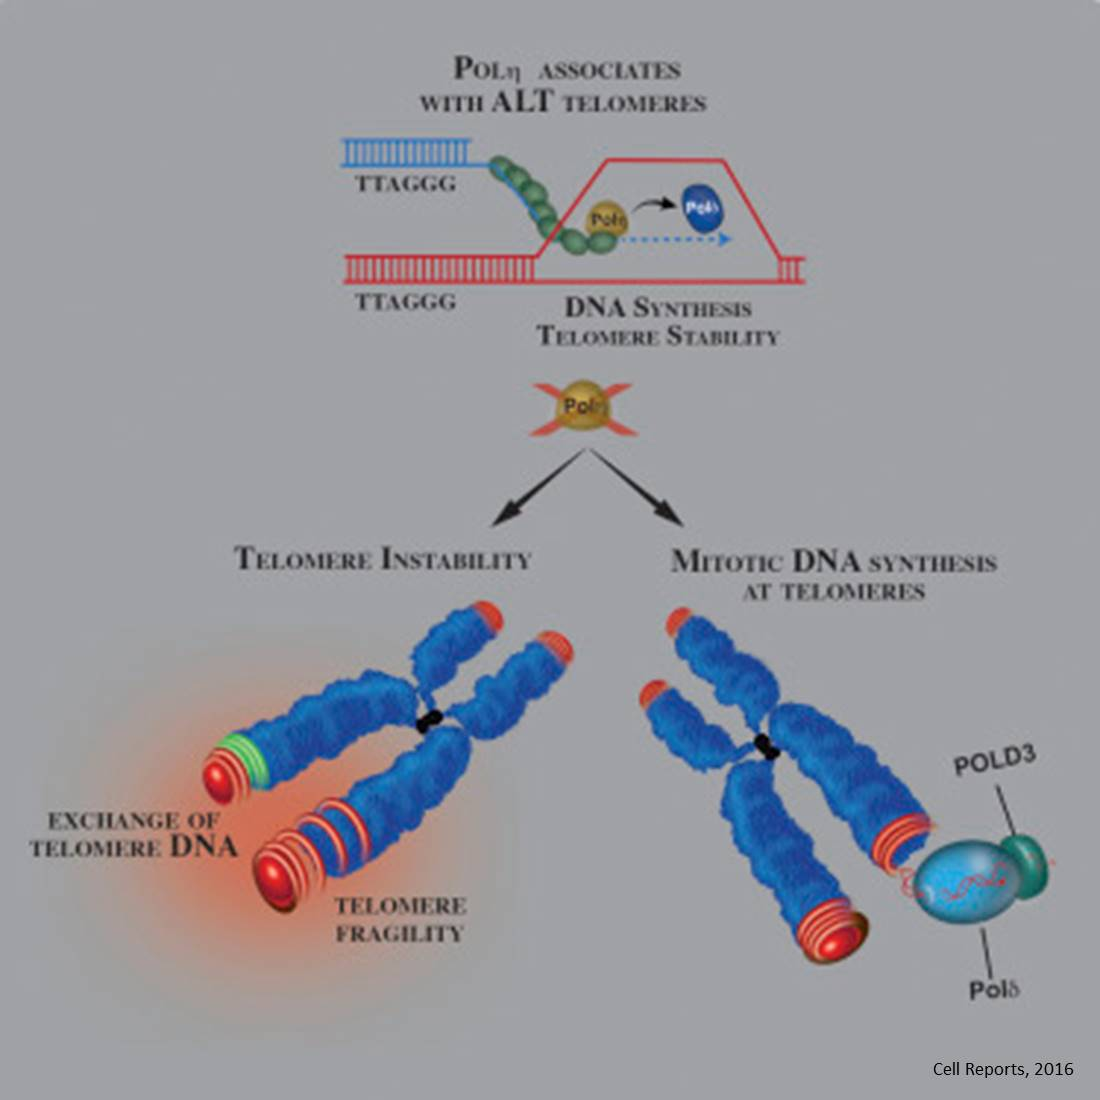 Cancer cells hijack DNA repair networks